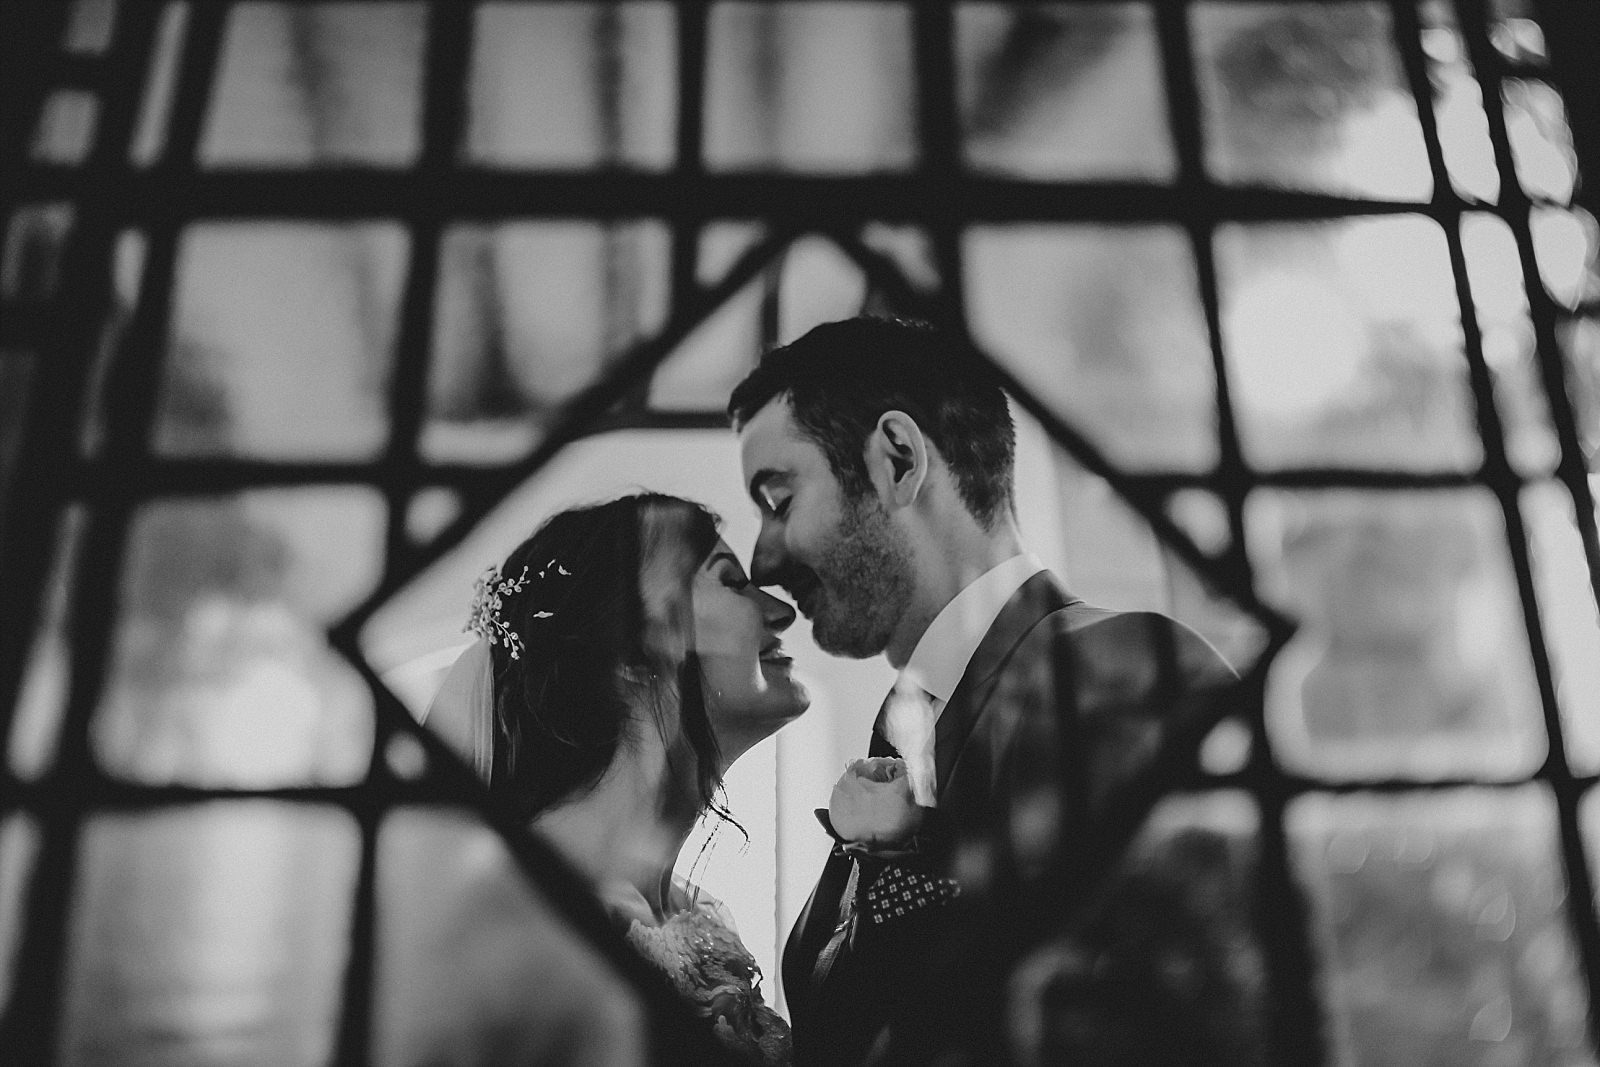 eaves hall wedding photographer uses the stained glass